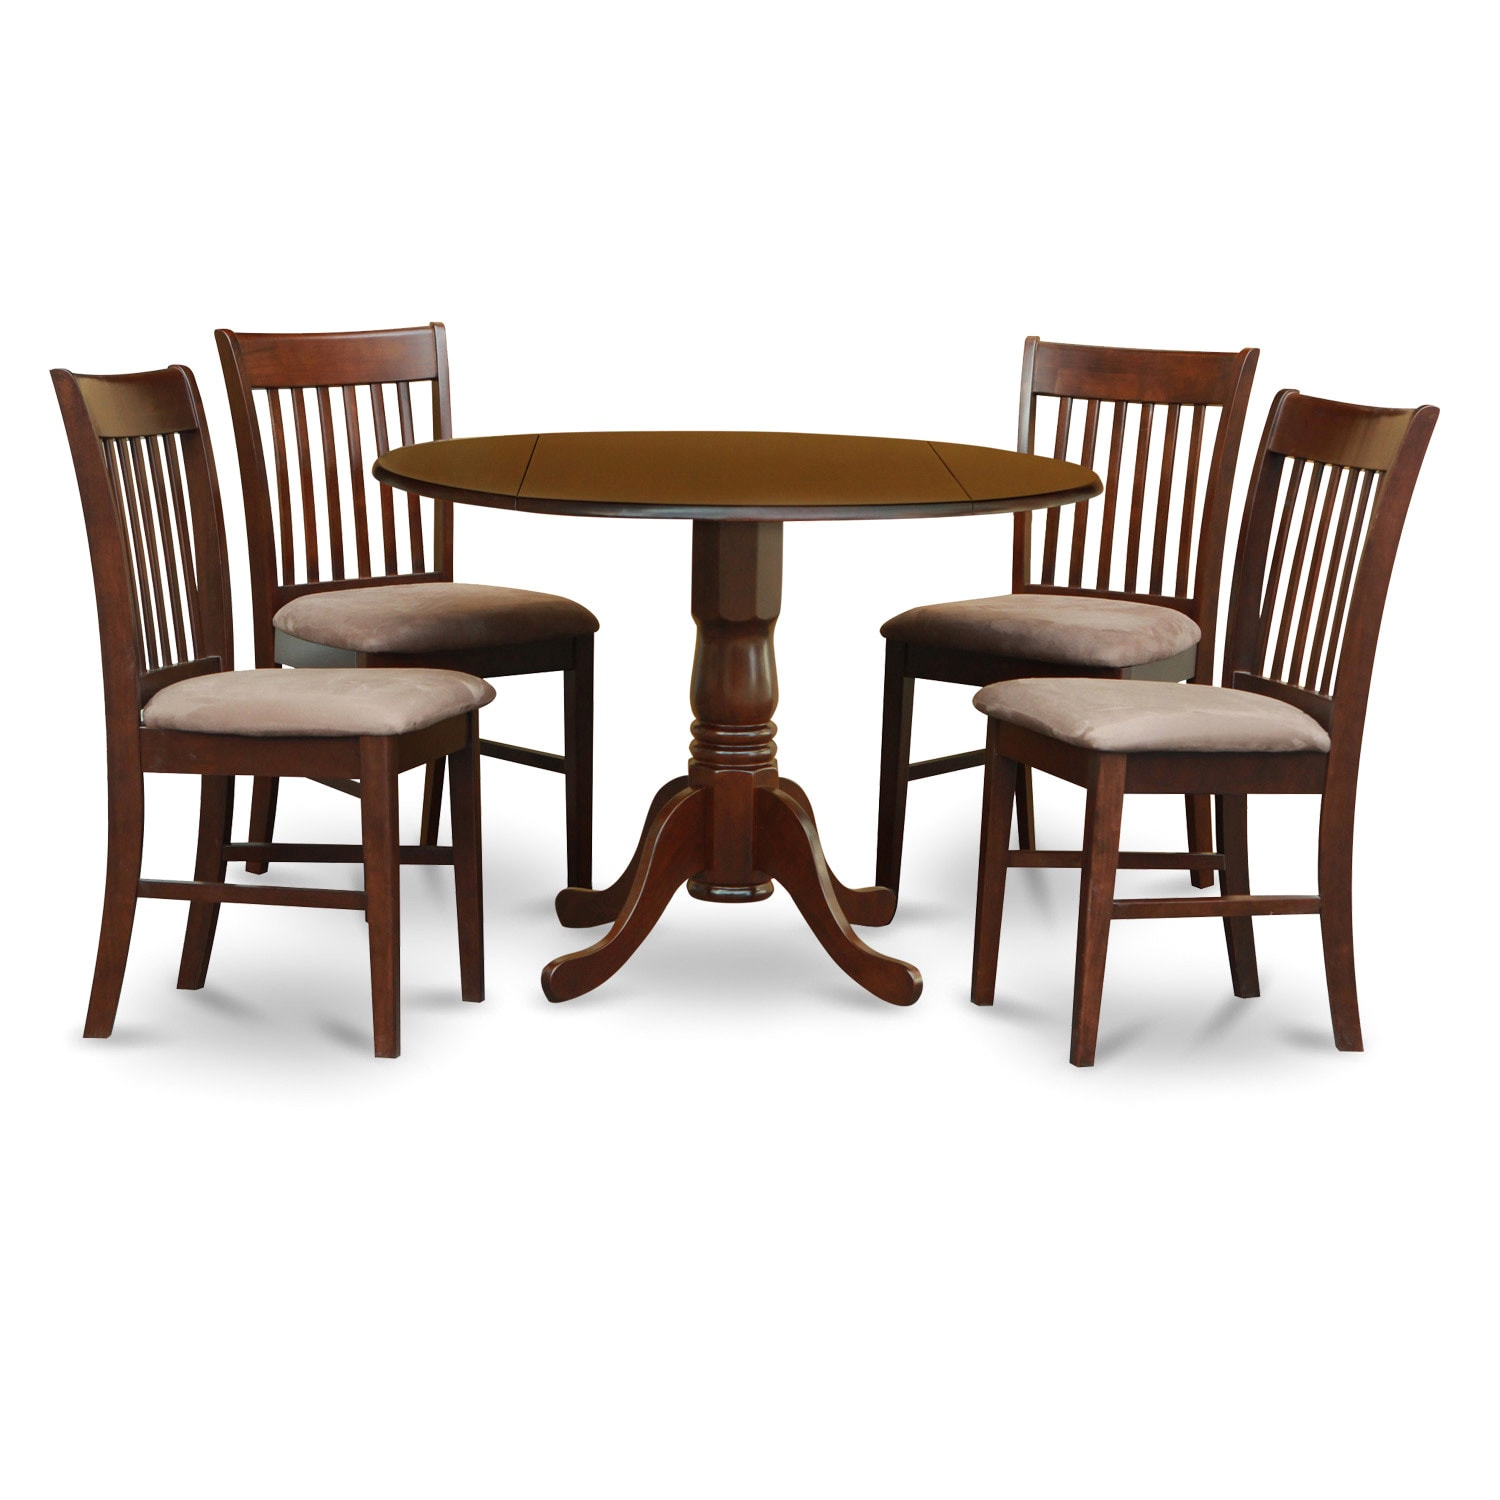 Round Breakfast Table Set: Mahogany Round Table And Dinette Chairs 5-piece Dining Set